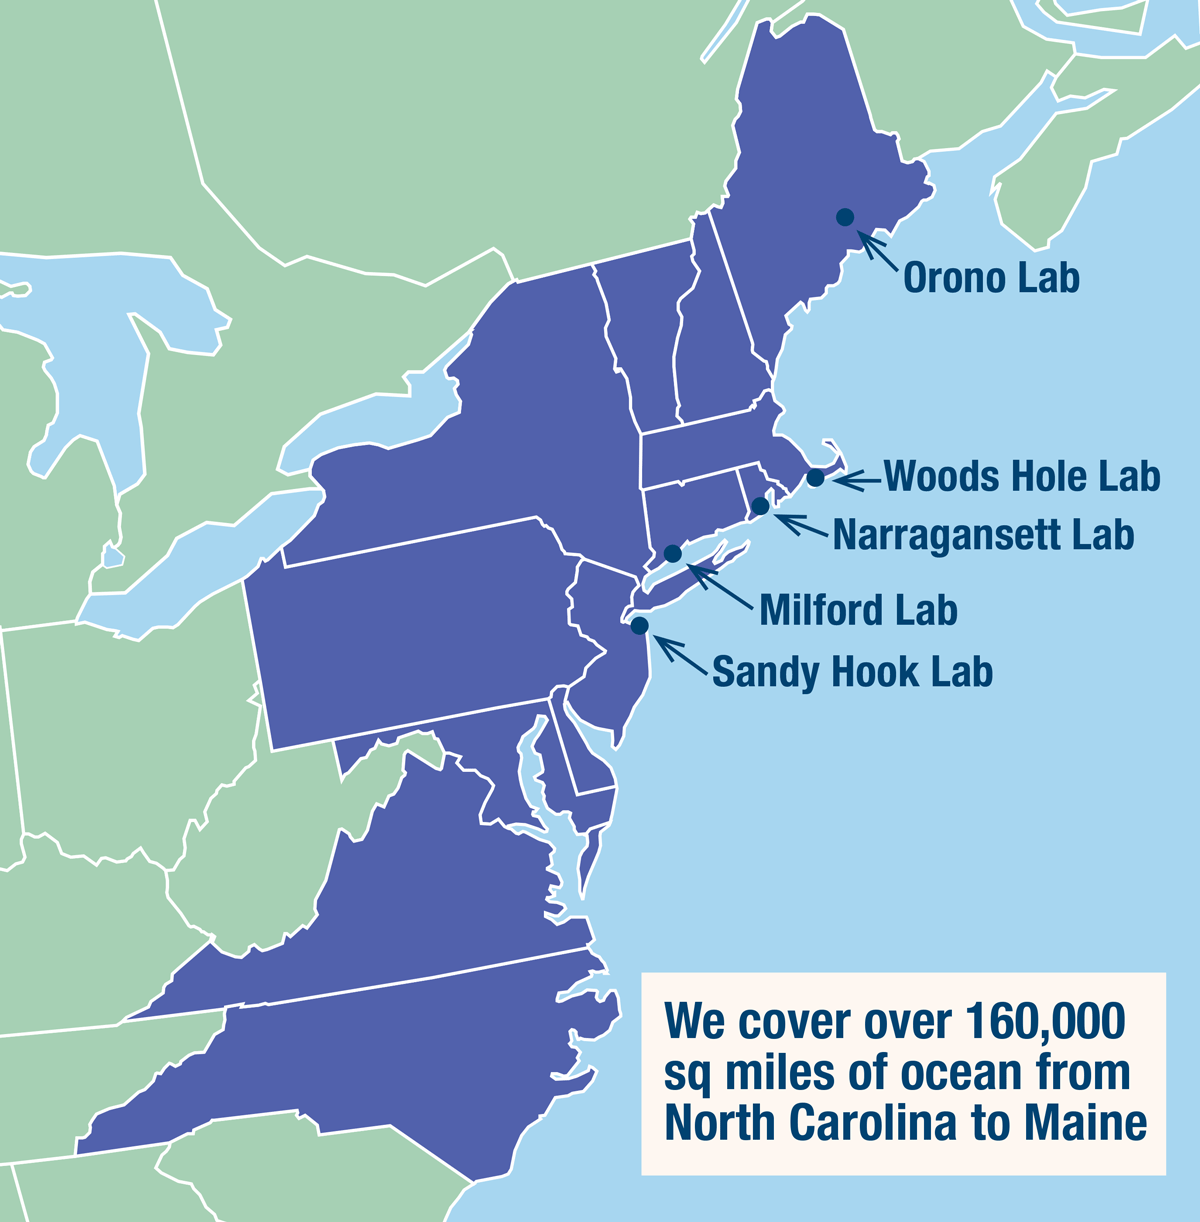 Map of the northeast U.S. coast showing Northeast Fisheries Science Center locations.